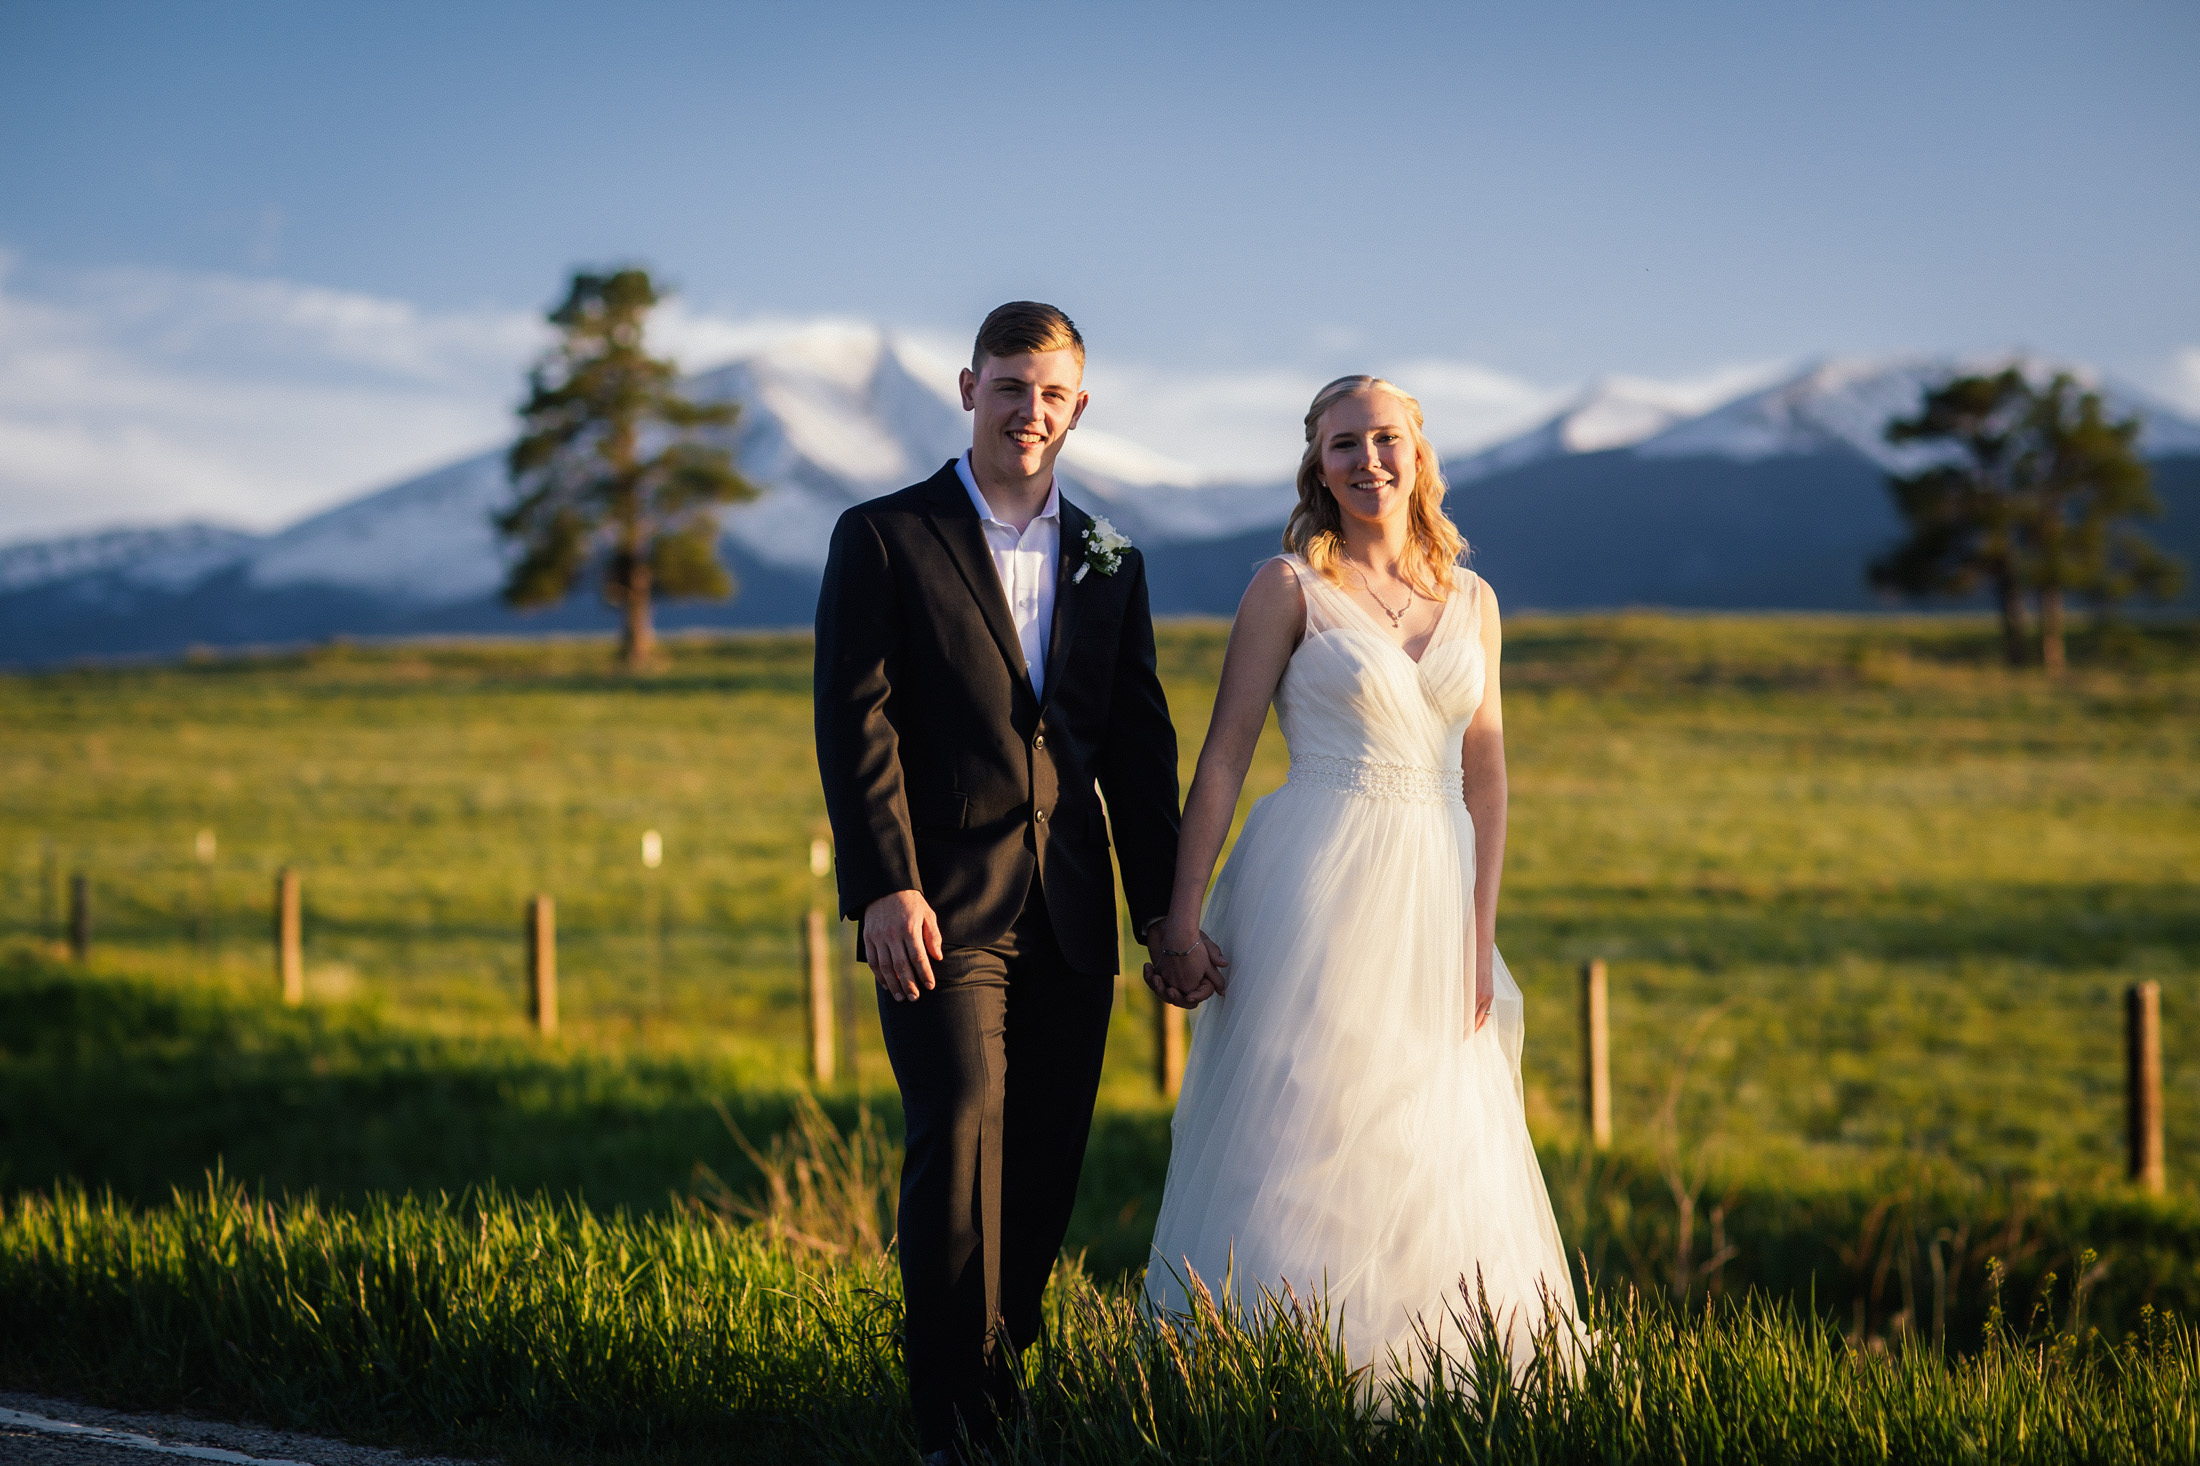 Bride and groom hold hands in field with mountains in the background.